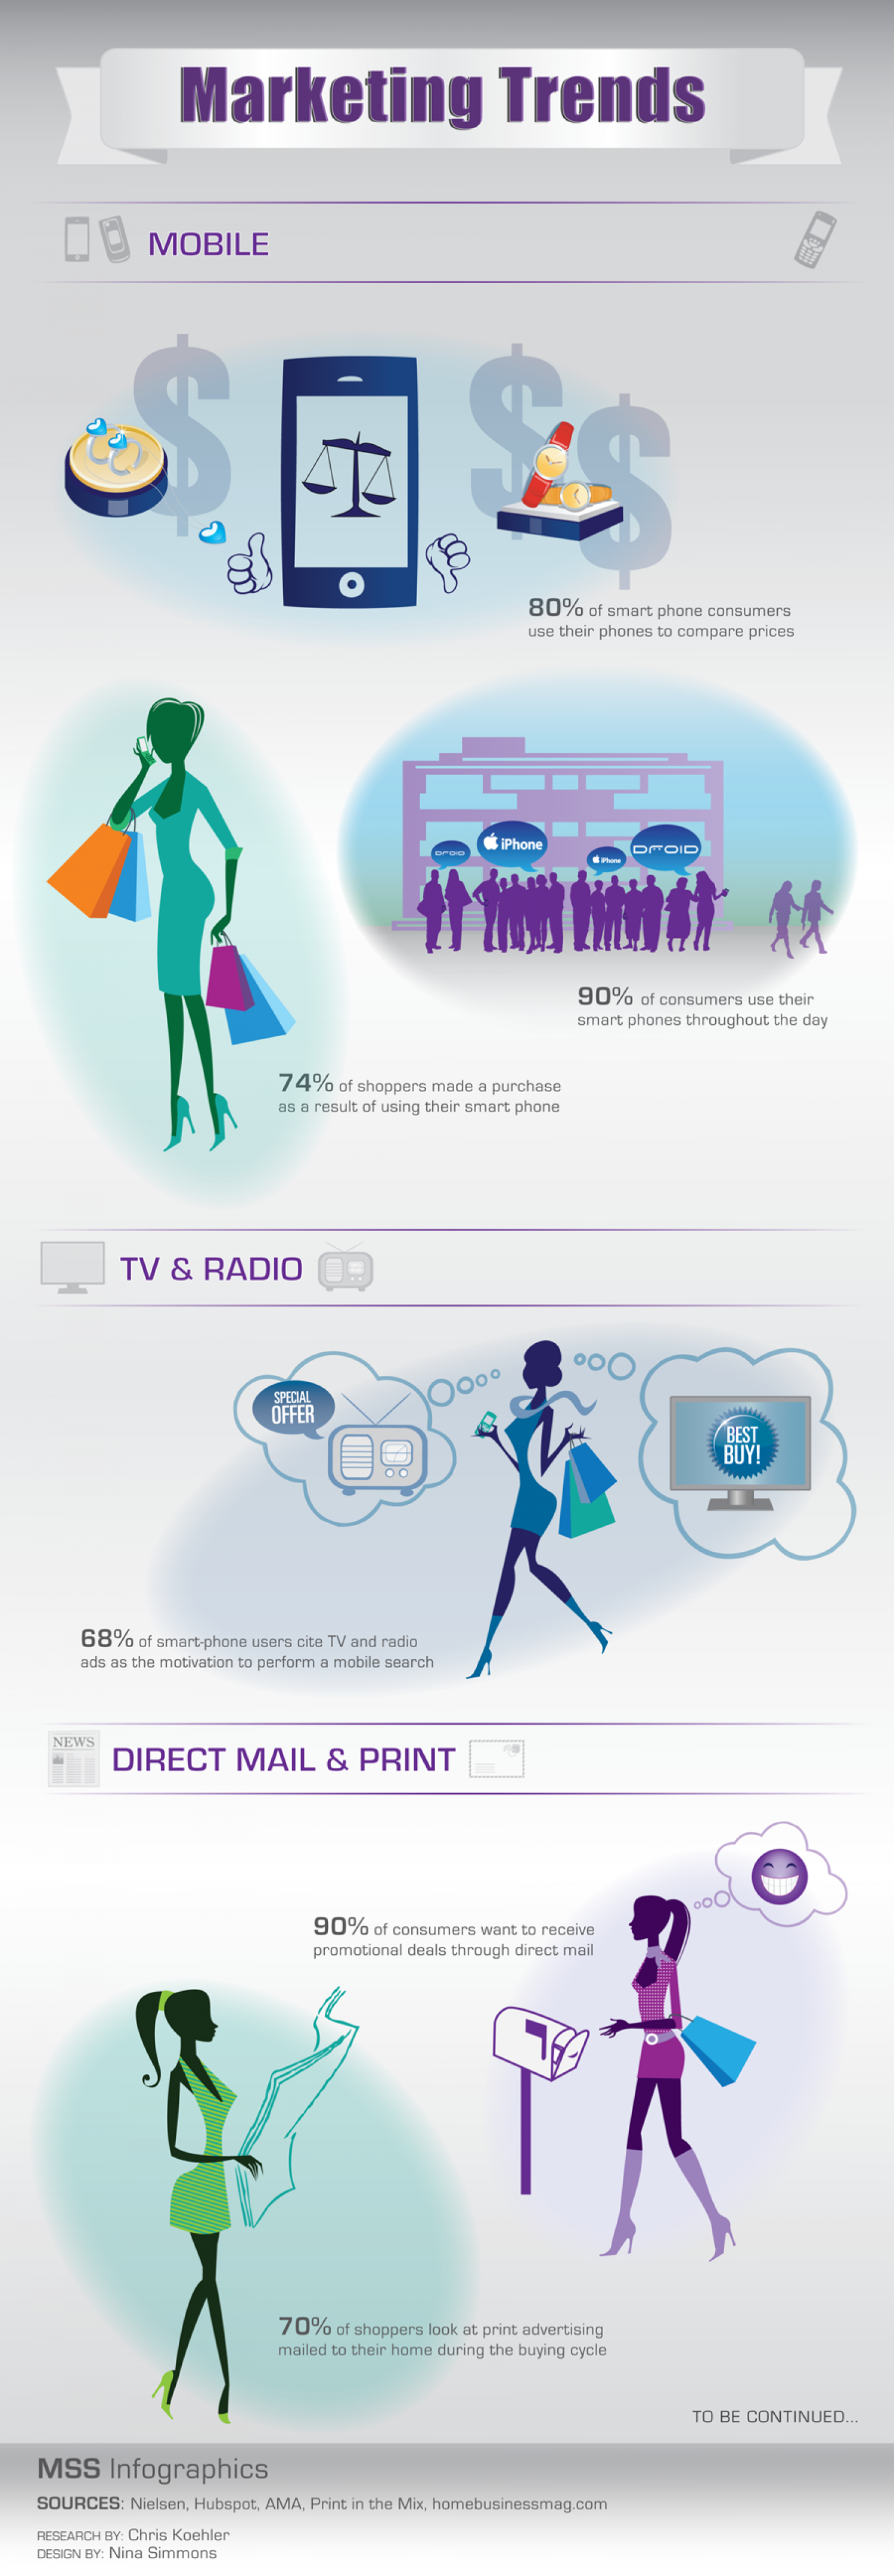 Marketing Trends Infographic